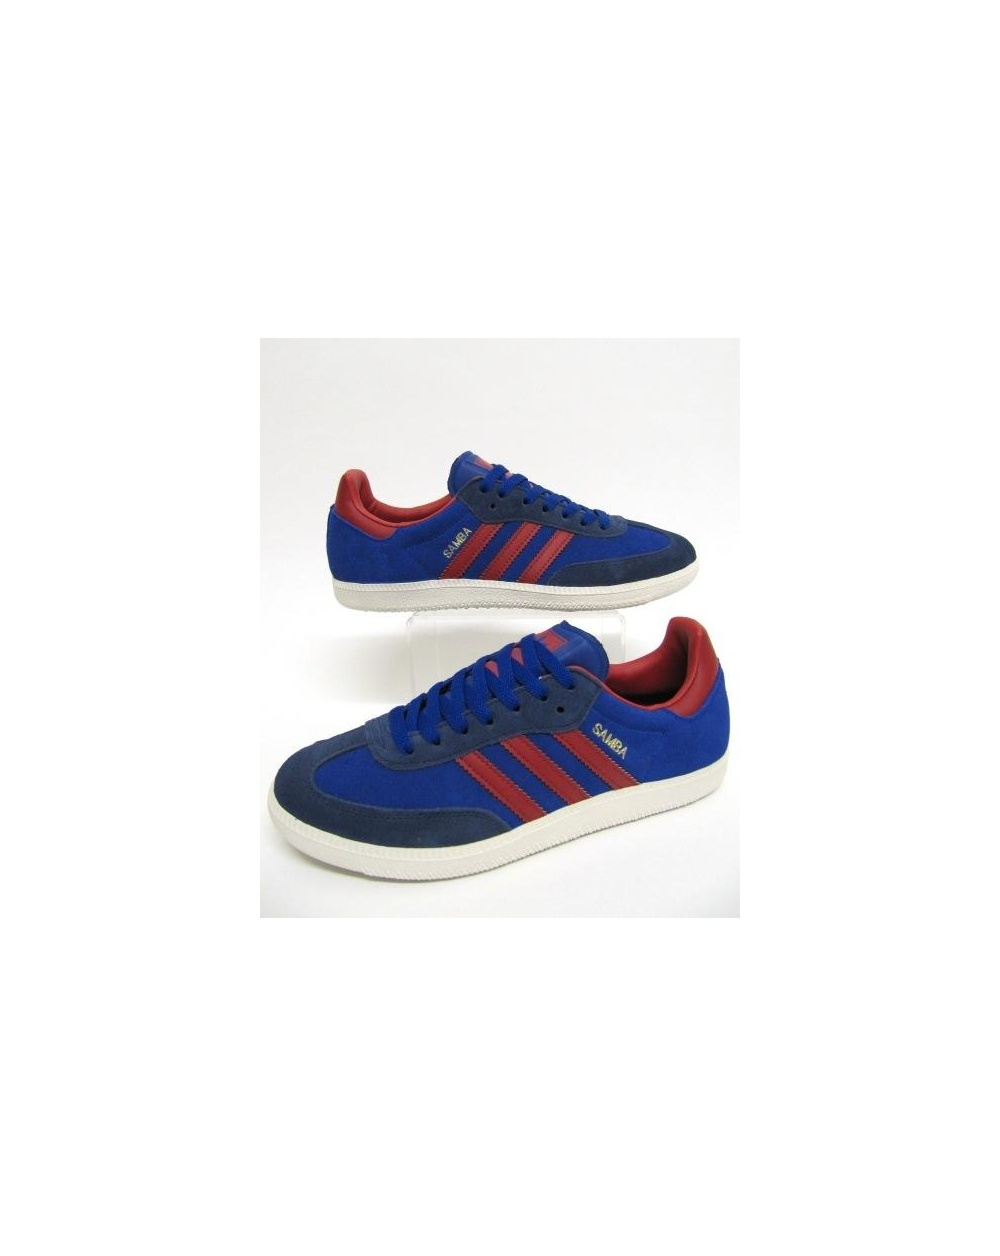 6a69011aae Buy adidas samba blue red   OFF63% Discounted